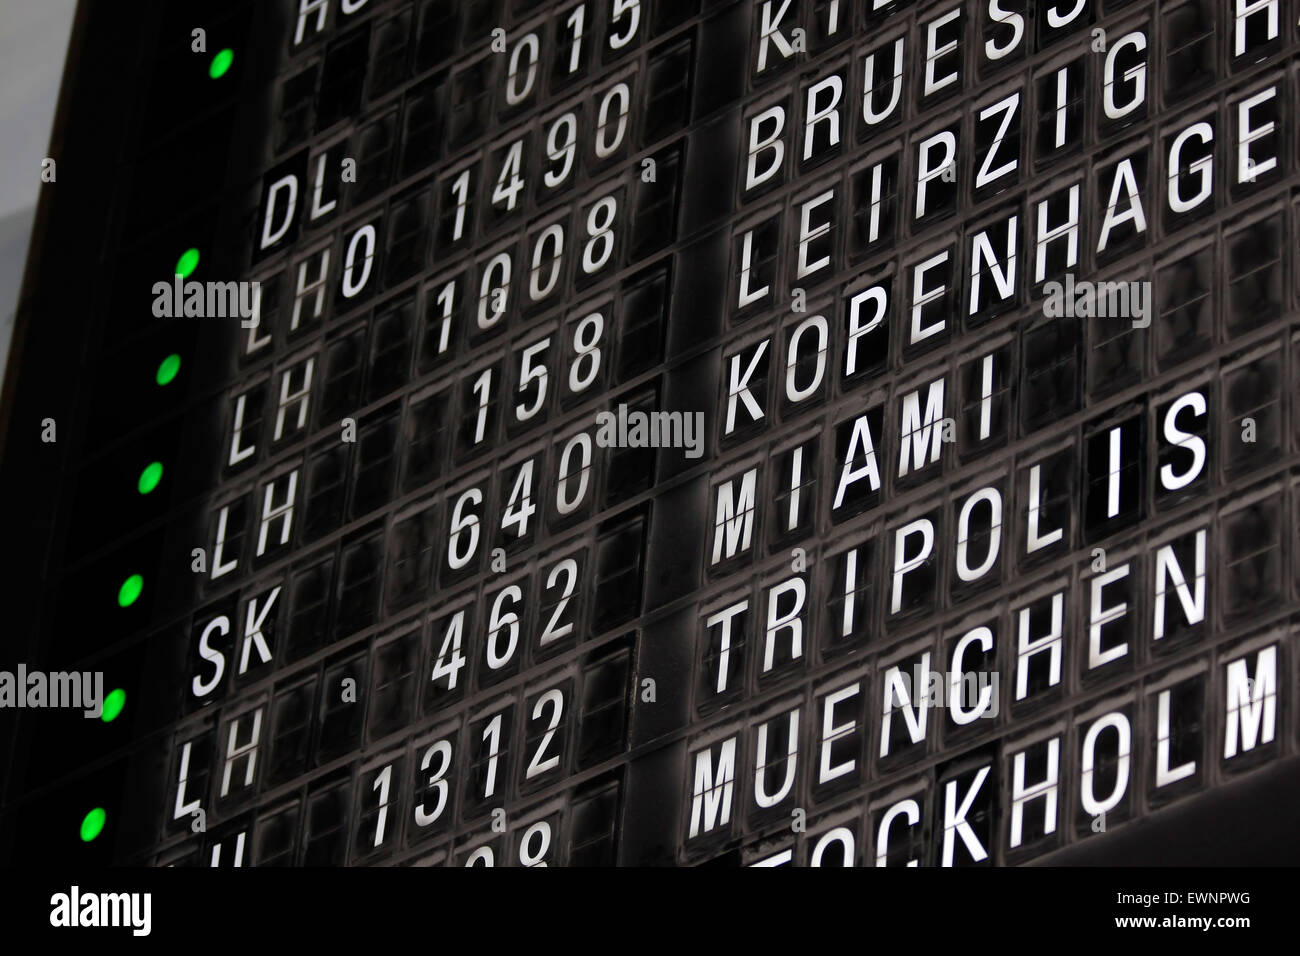 Departure Gate List High Resolution Stock Photography And Images Alamy